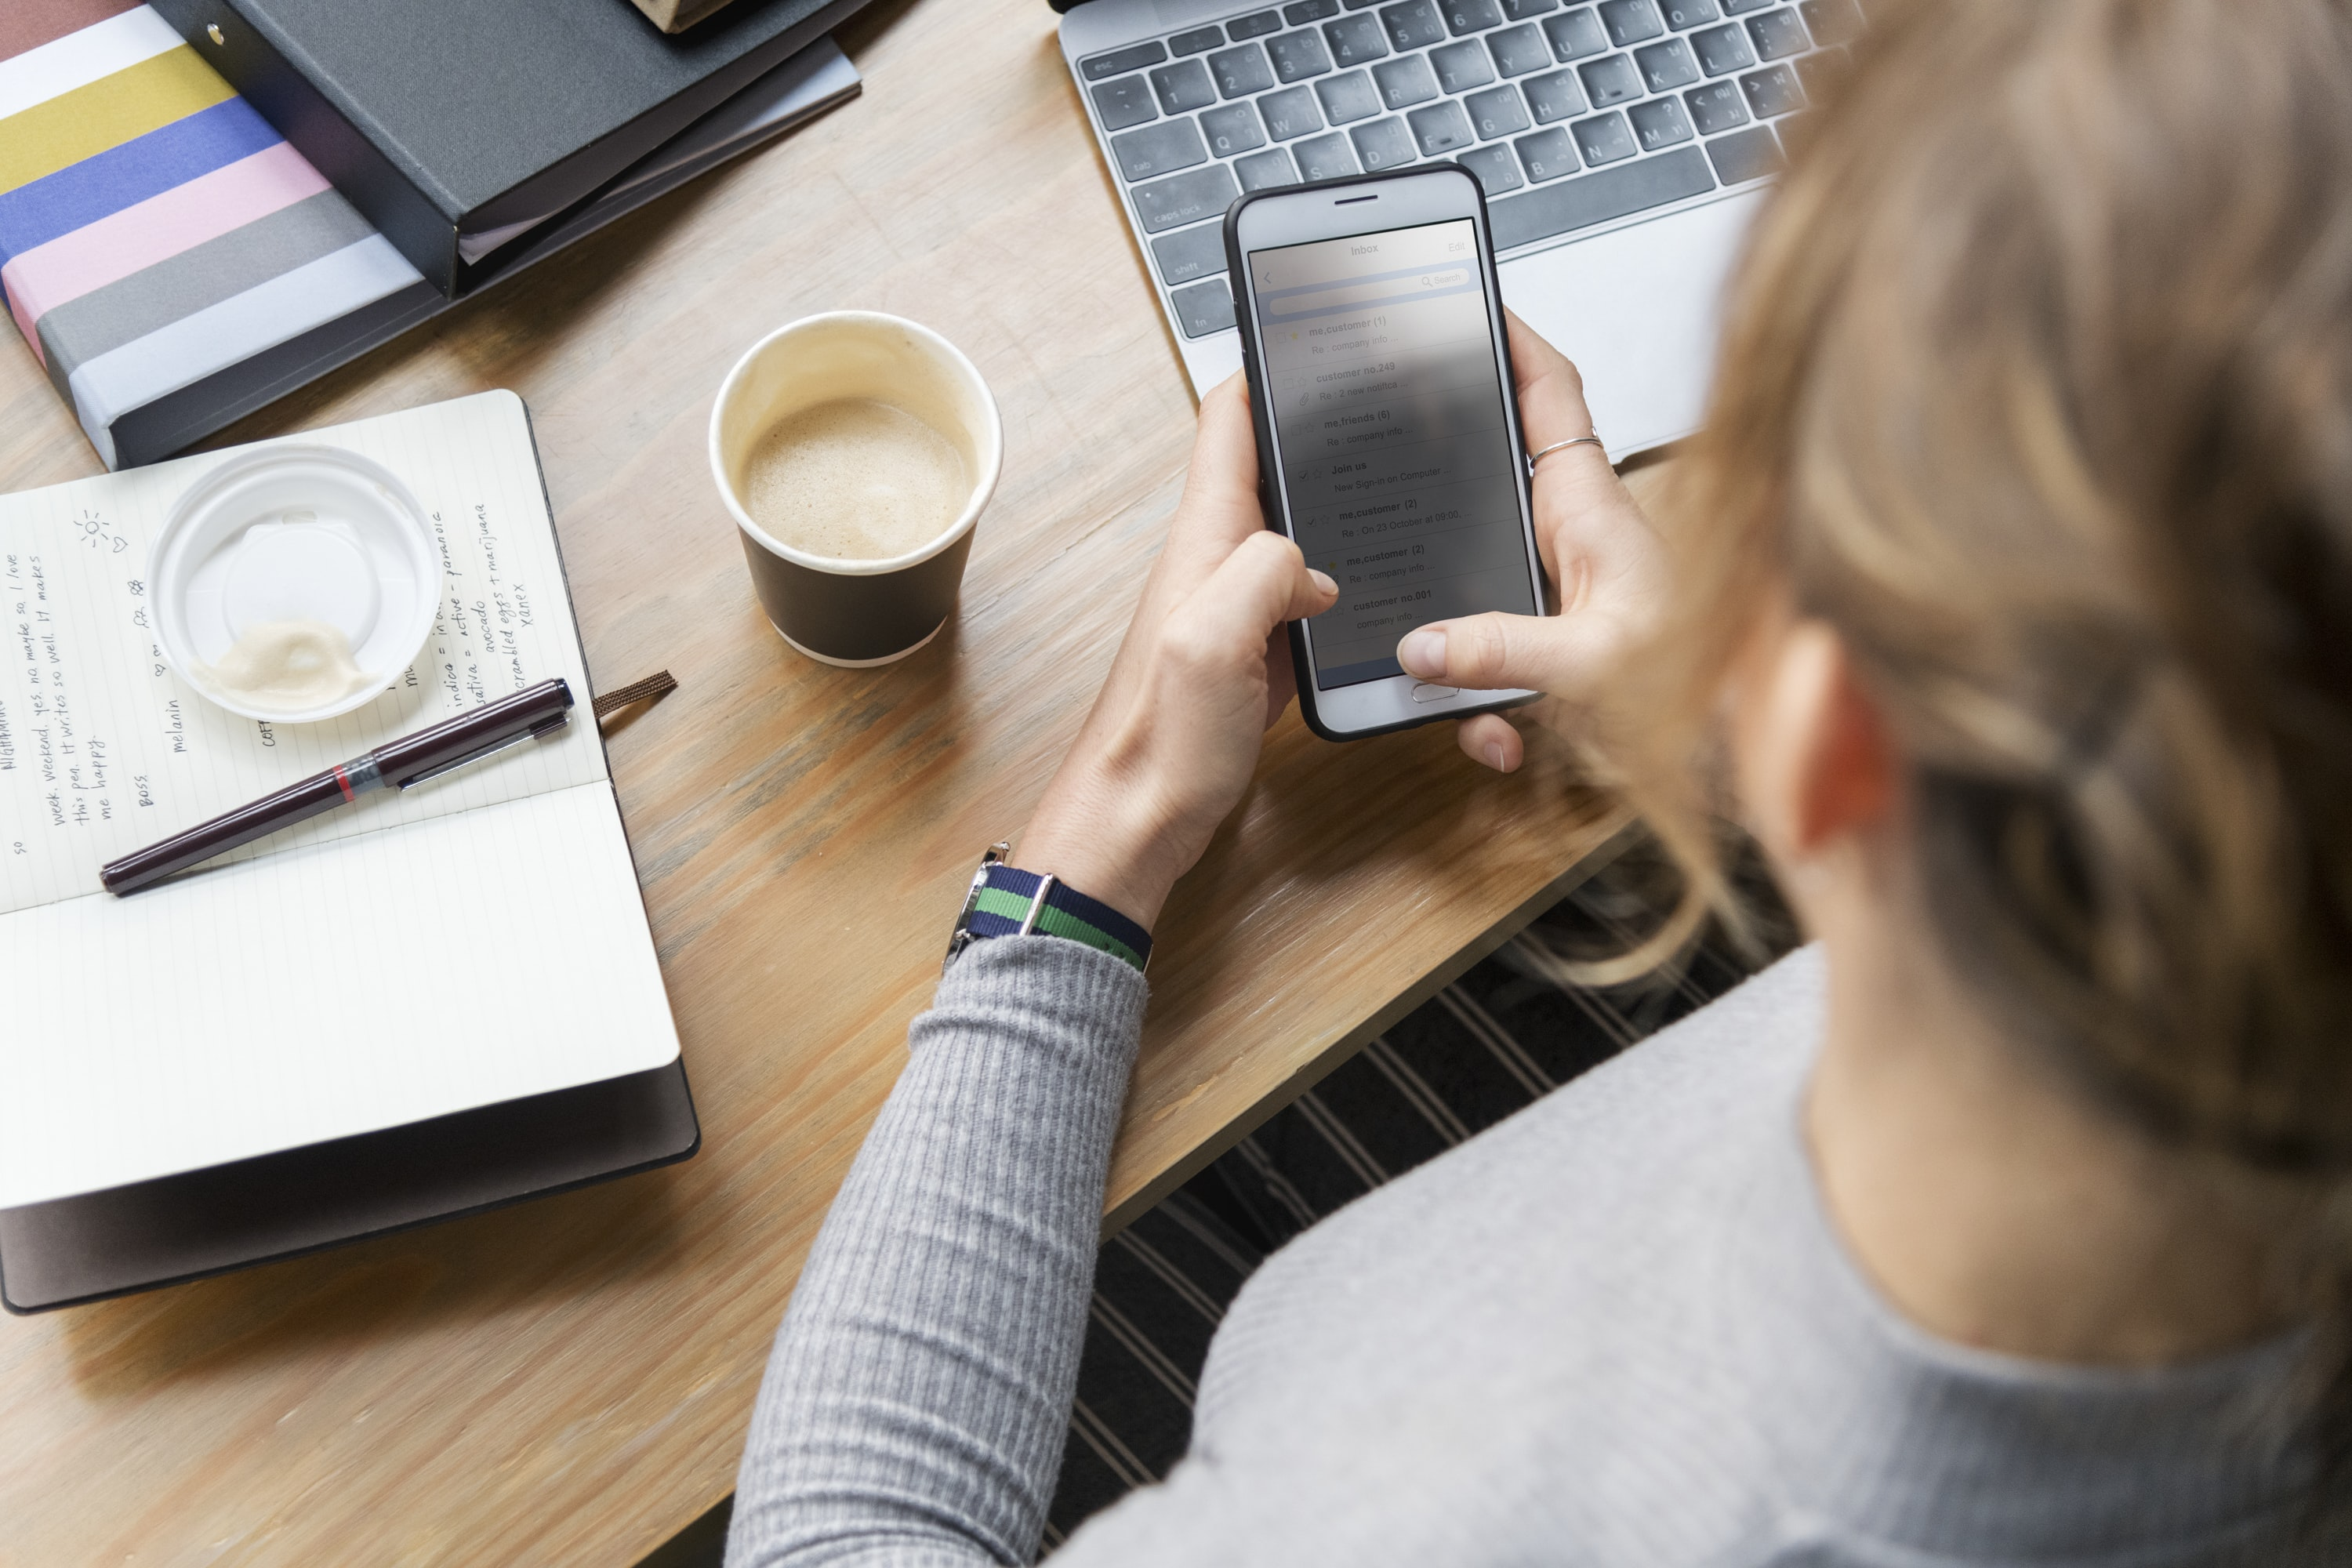 woman operating smartphone in front of laptop and cup of coffee